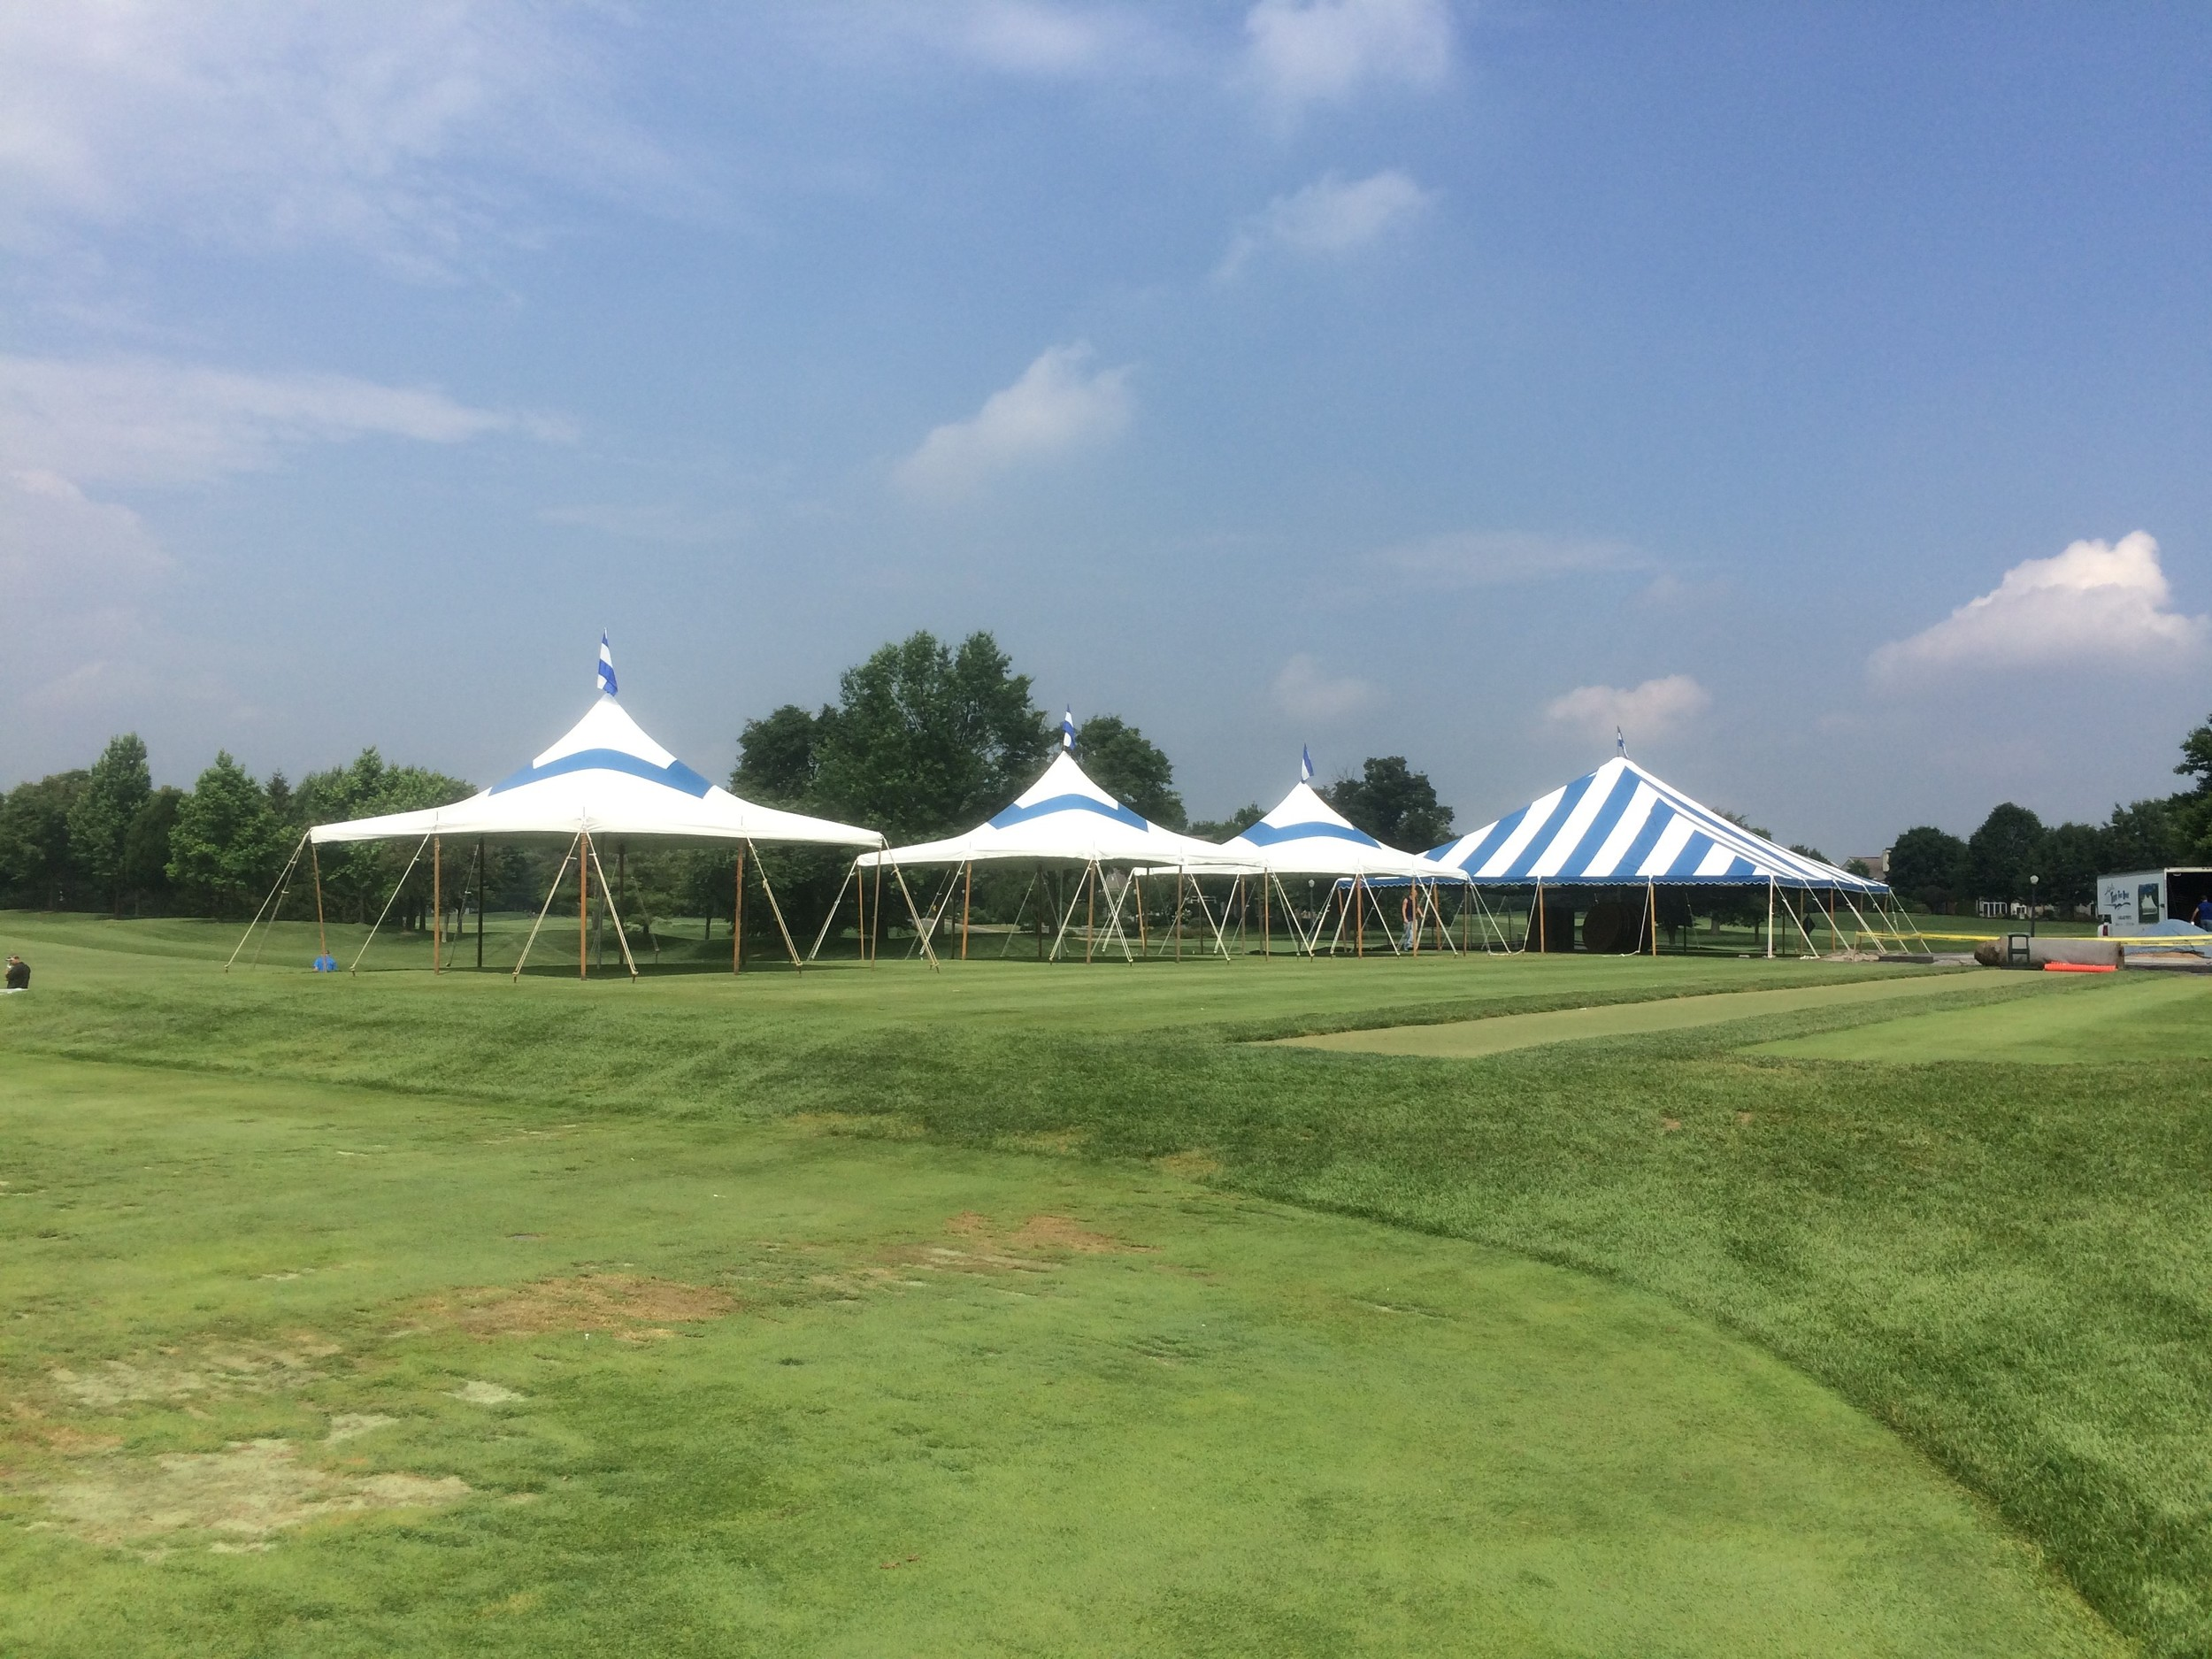 40' wide and 20x20 blue tents